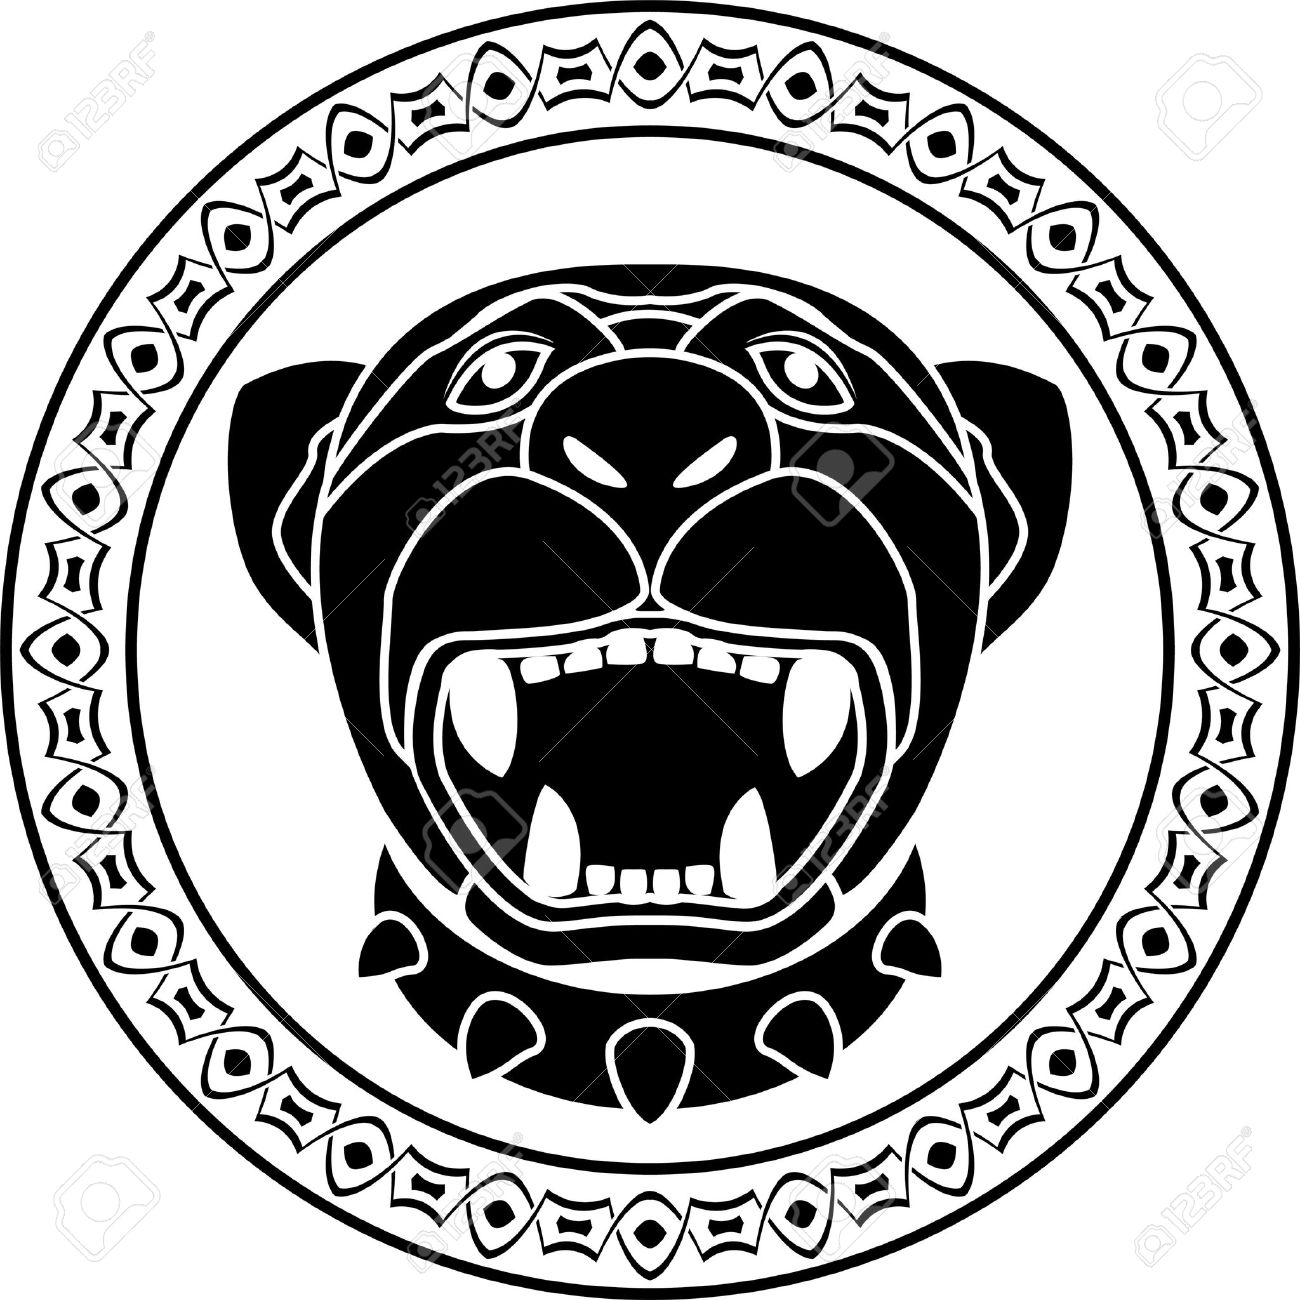 Panther of aztec stencil second variant illustration royalty free panther of aztec stencil second variant illustration stock vector 13794062 biocorpaavc Image collections